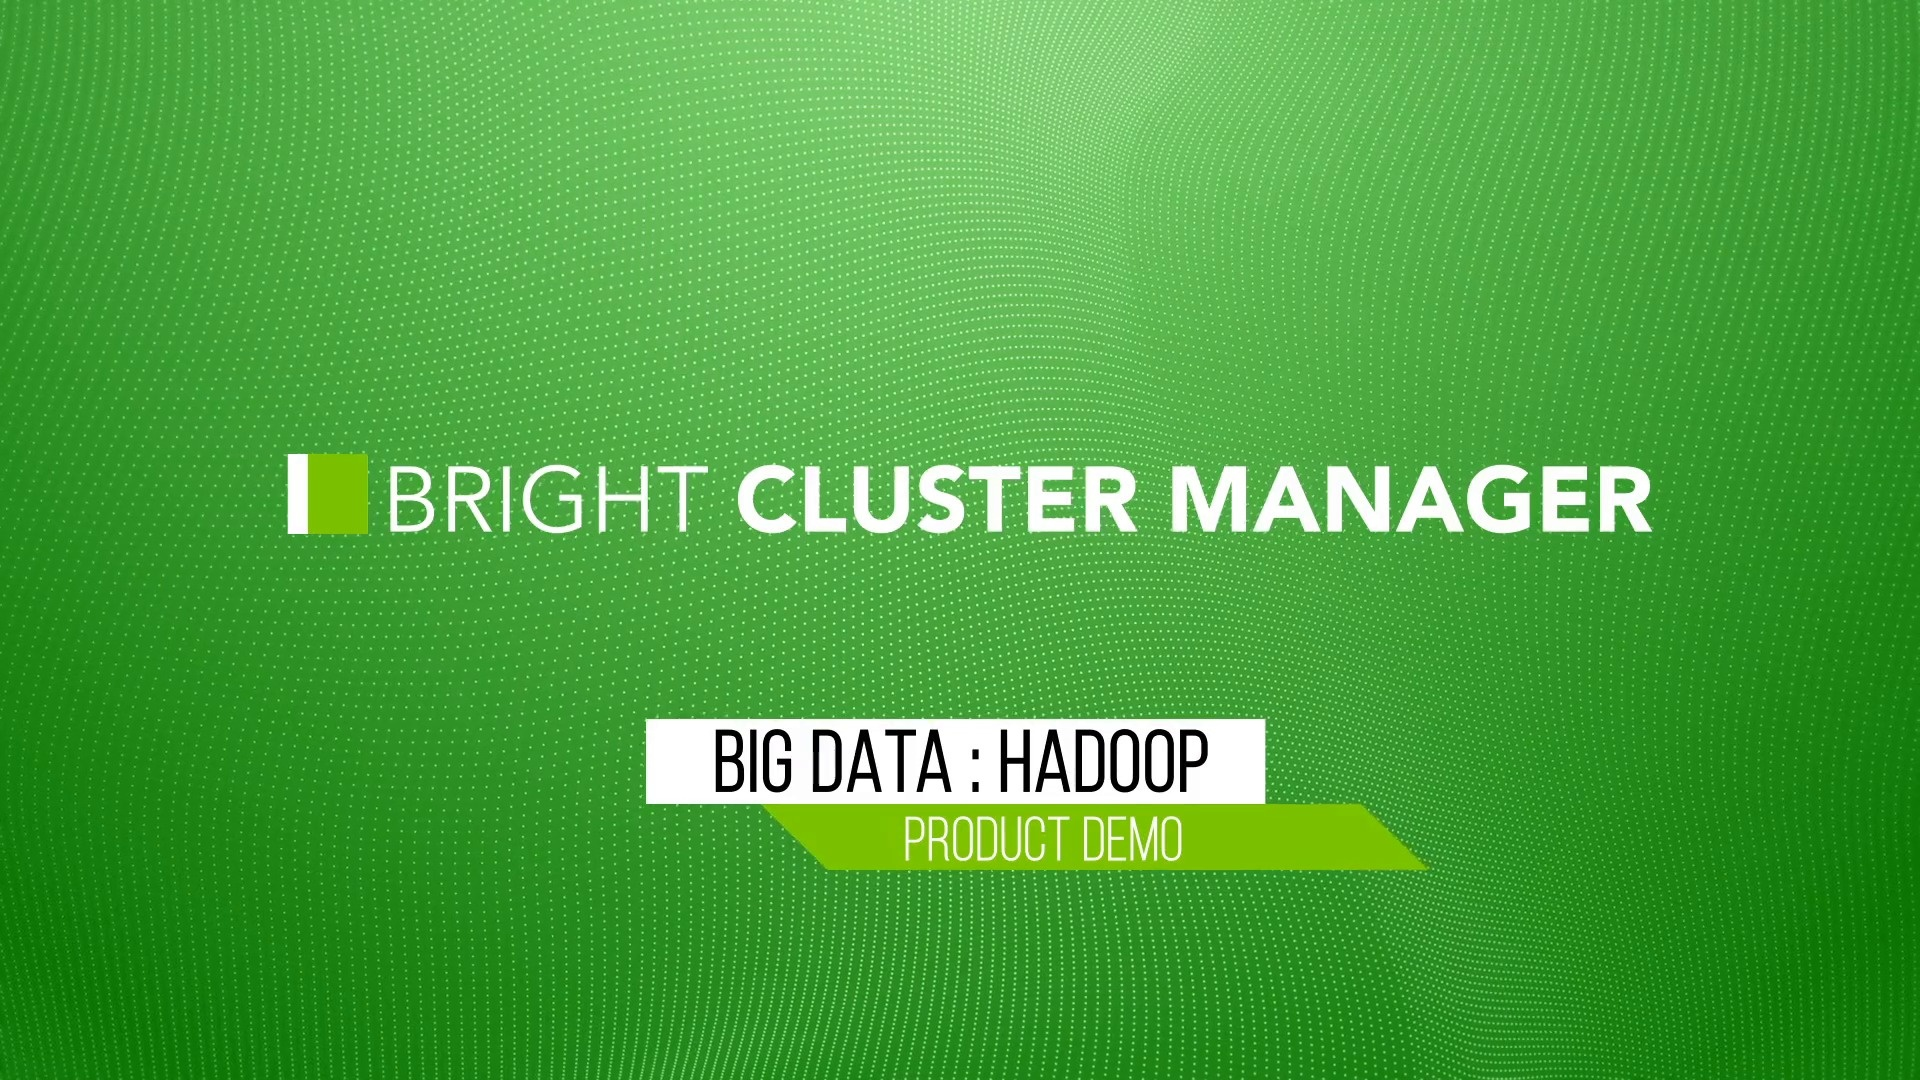 Wistia video thumbnail - Bright Cluster Manager : Hadoop